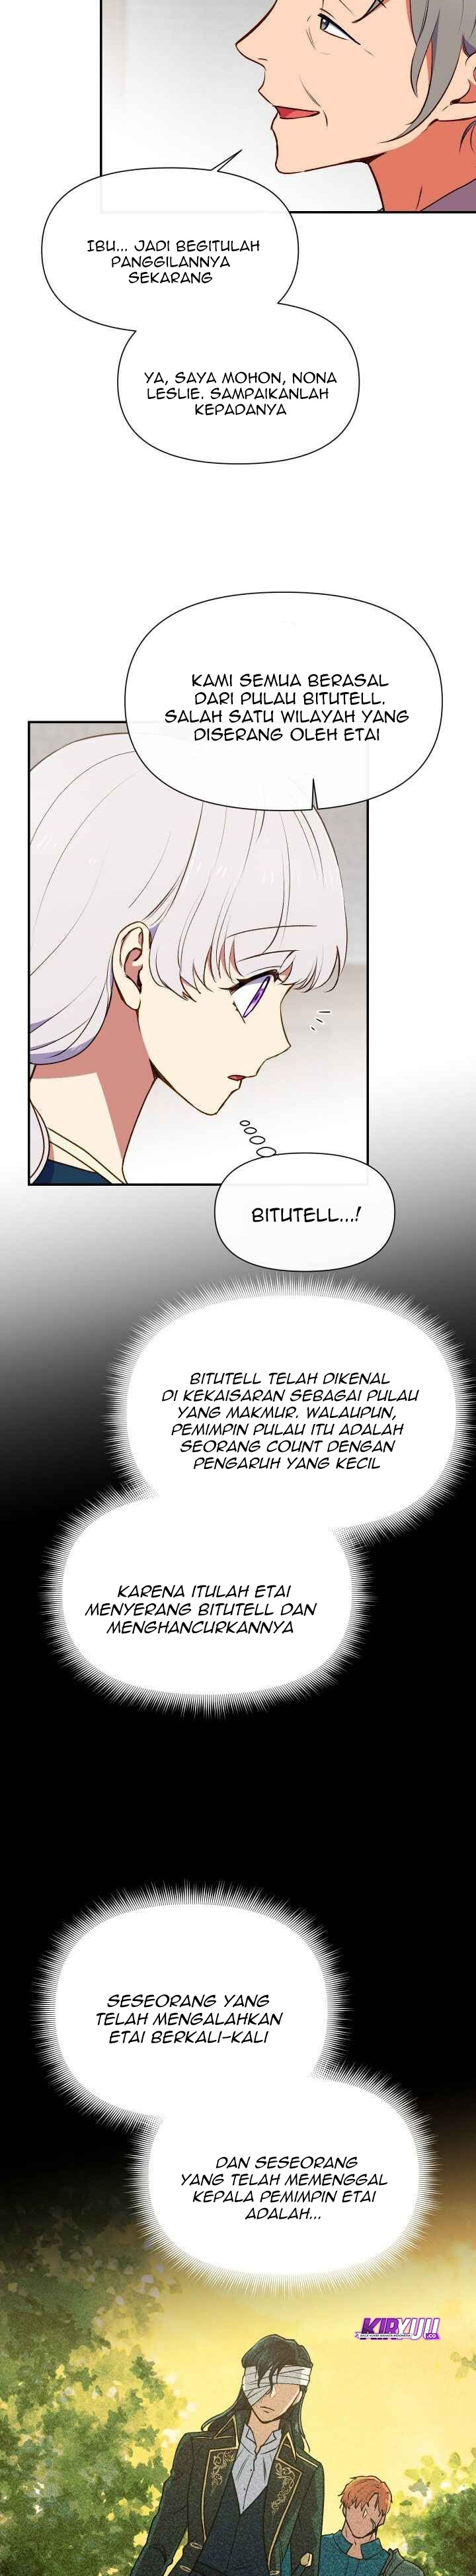 The Monster Duchess and Contract Princess: Chapter 67 - Page 6